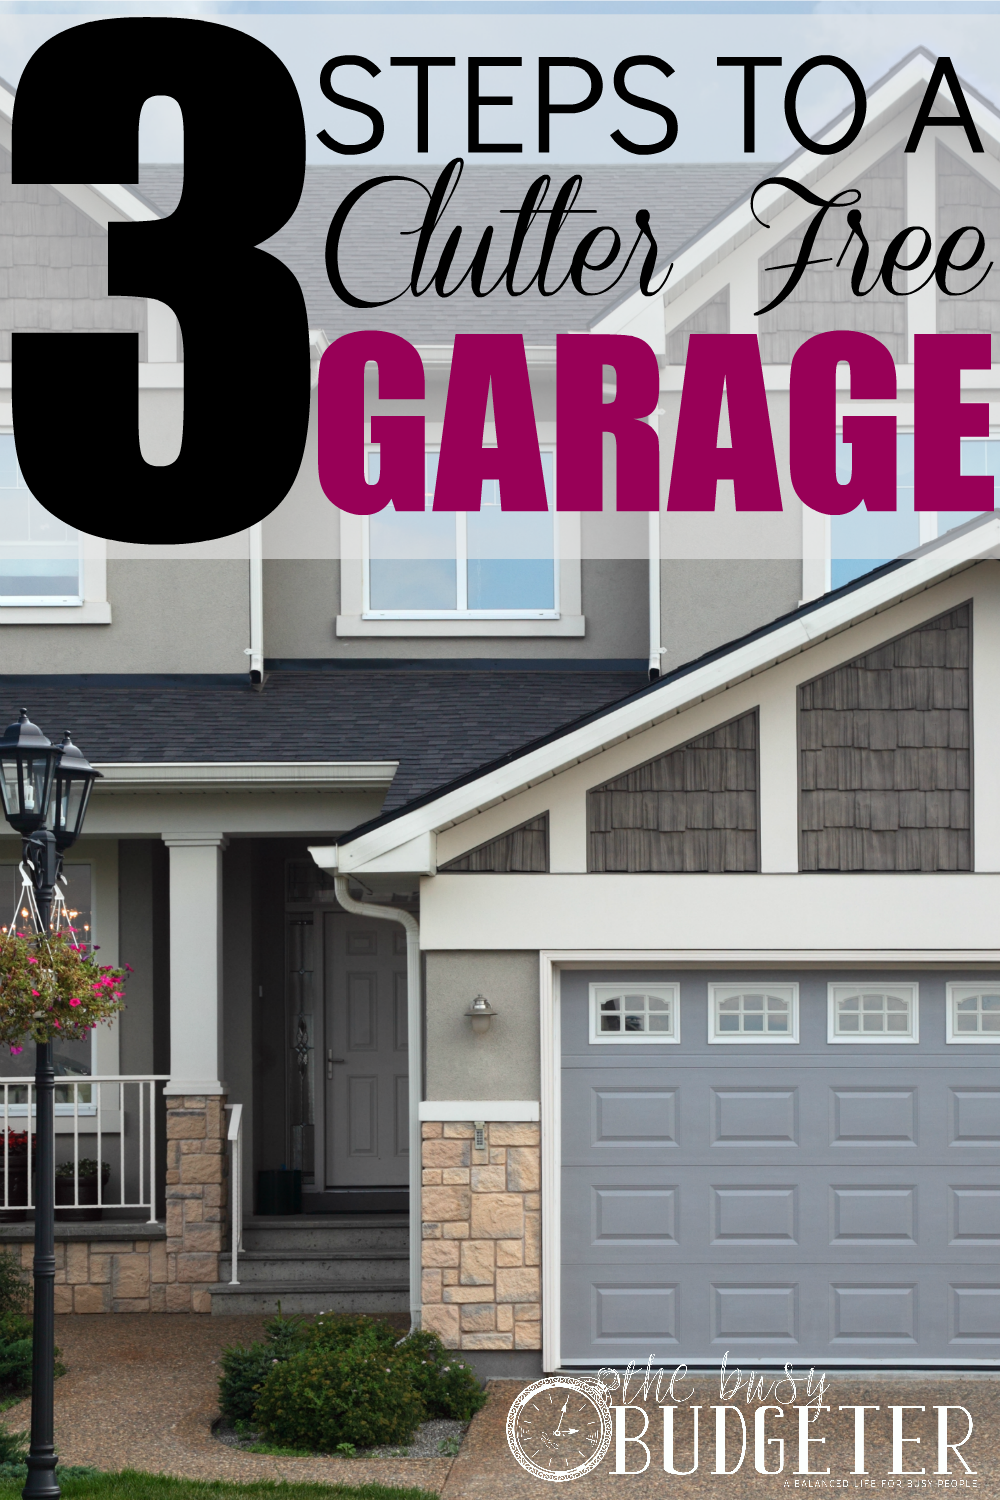 3 Steps to a Clutter free Garage. Love these tips! Our garage was such a mess and we tackled it this weekend. This post was a big help! we did all three steps and number two made the biggest difference. I never would have thought of that. My husband sent me to Pinterest to look up garage ideas (ahahaha... love him! I'm very helpful, clearly) and this was a winner.